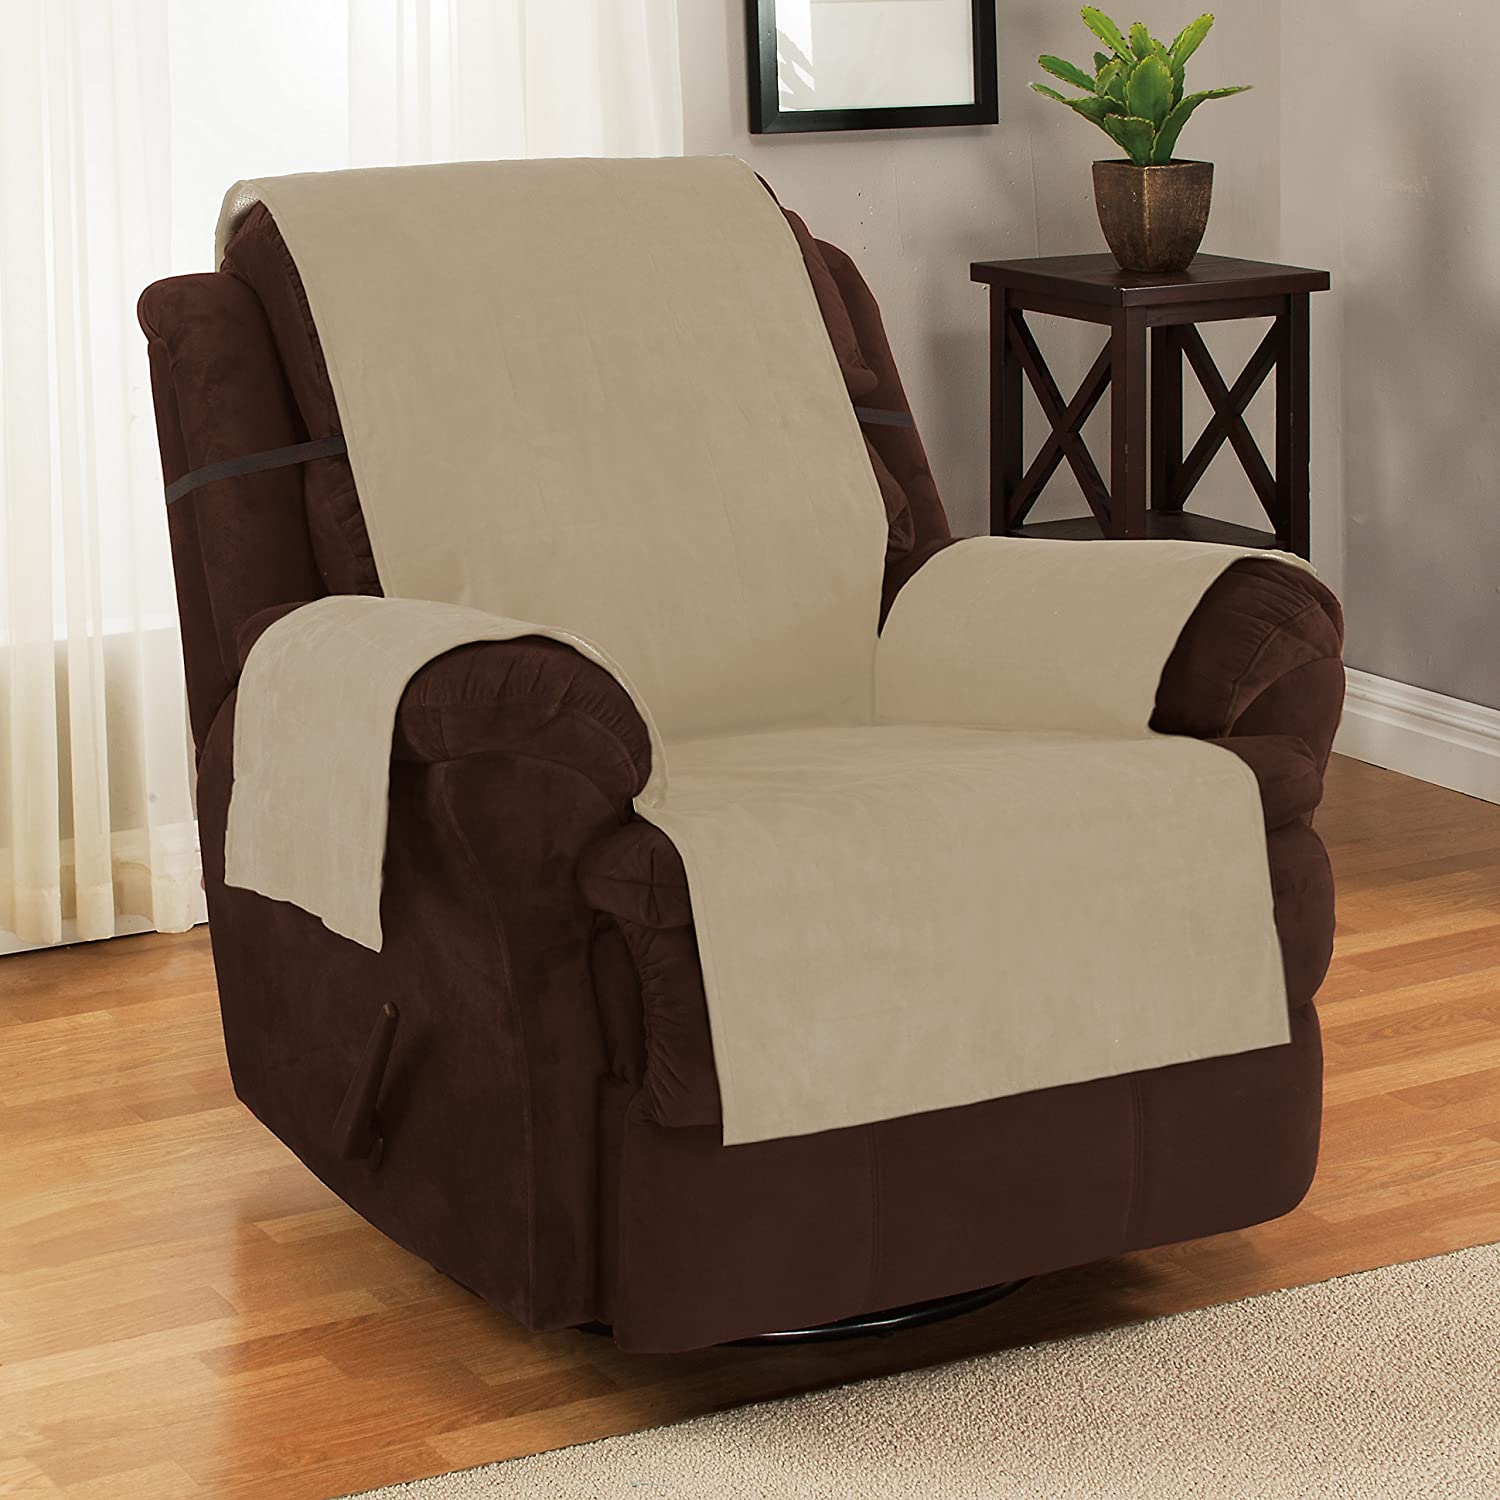 great recliner magnolia stretch slipcover velvet fit form walnut collection bay home products by for plush printed